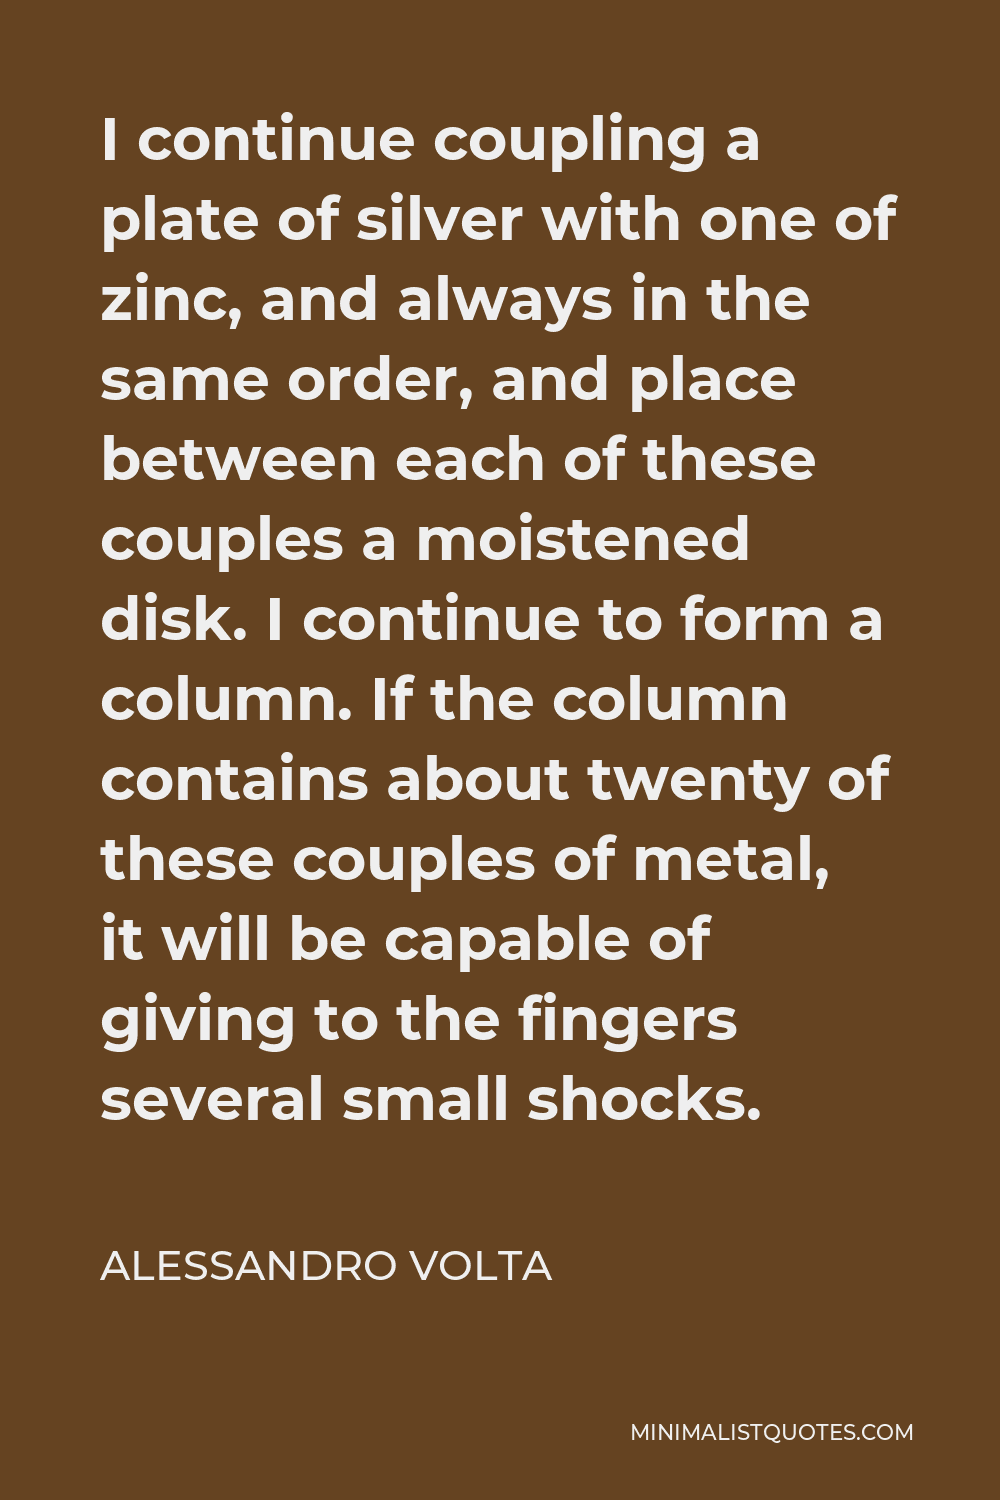 Alessandro Volta Quote - I continue coupling a plate of silver with one of zinc, and always in the same order, and place between each of these couples a moistened disk. I continue to form a column. If the column contains about twenty of these couples of metal, it will be capable of giving to the fingers several small shocks.